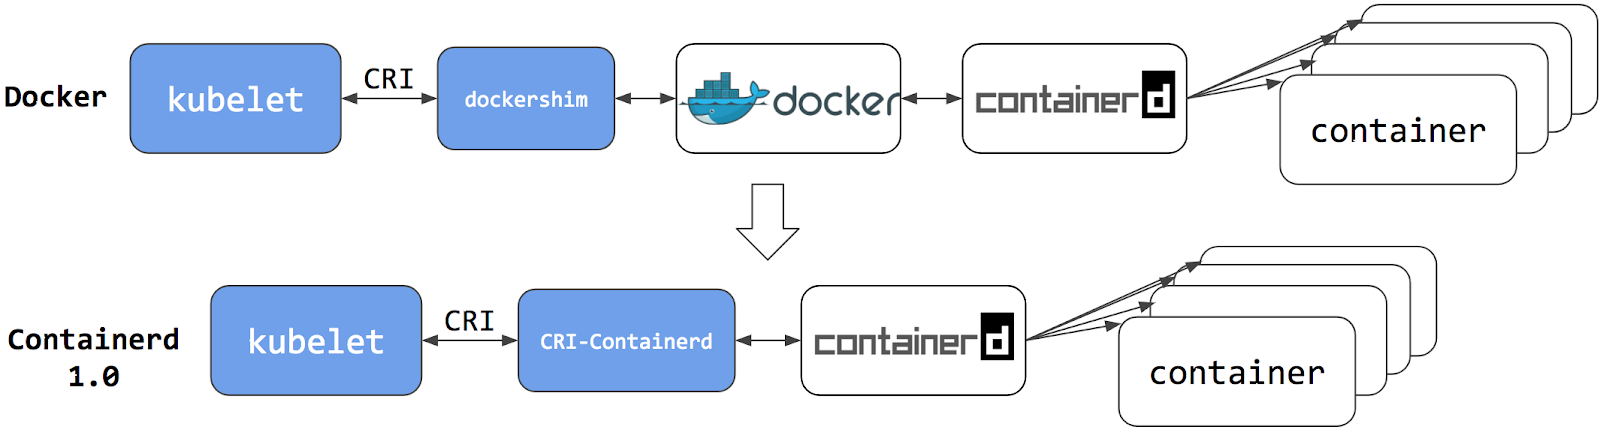 Kubernetes Containerd Integration Goes GA | Kubernetes